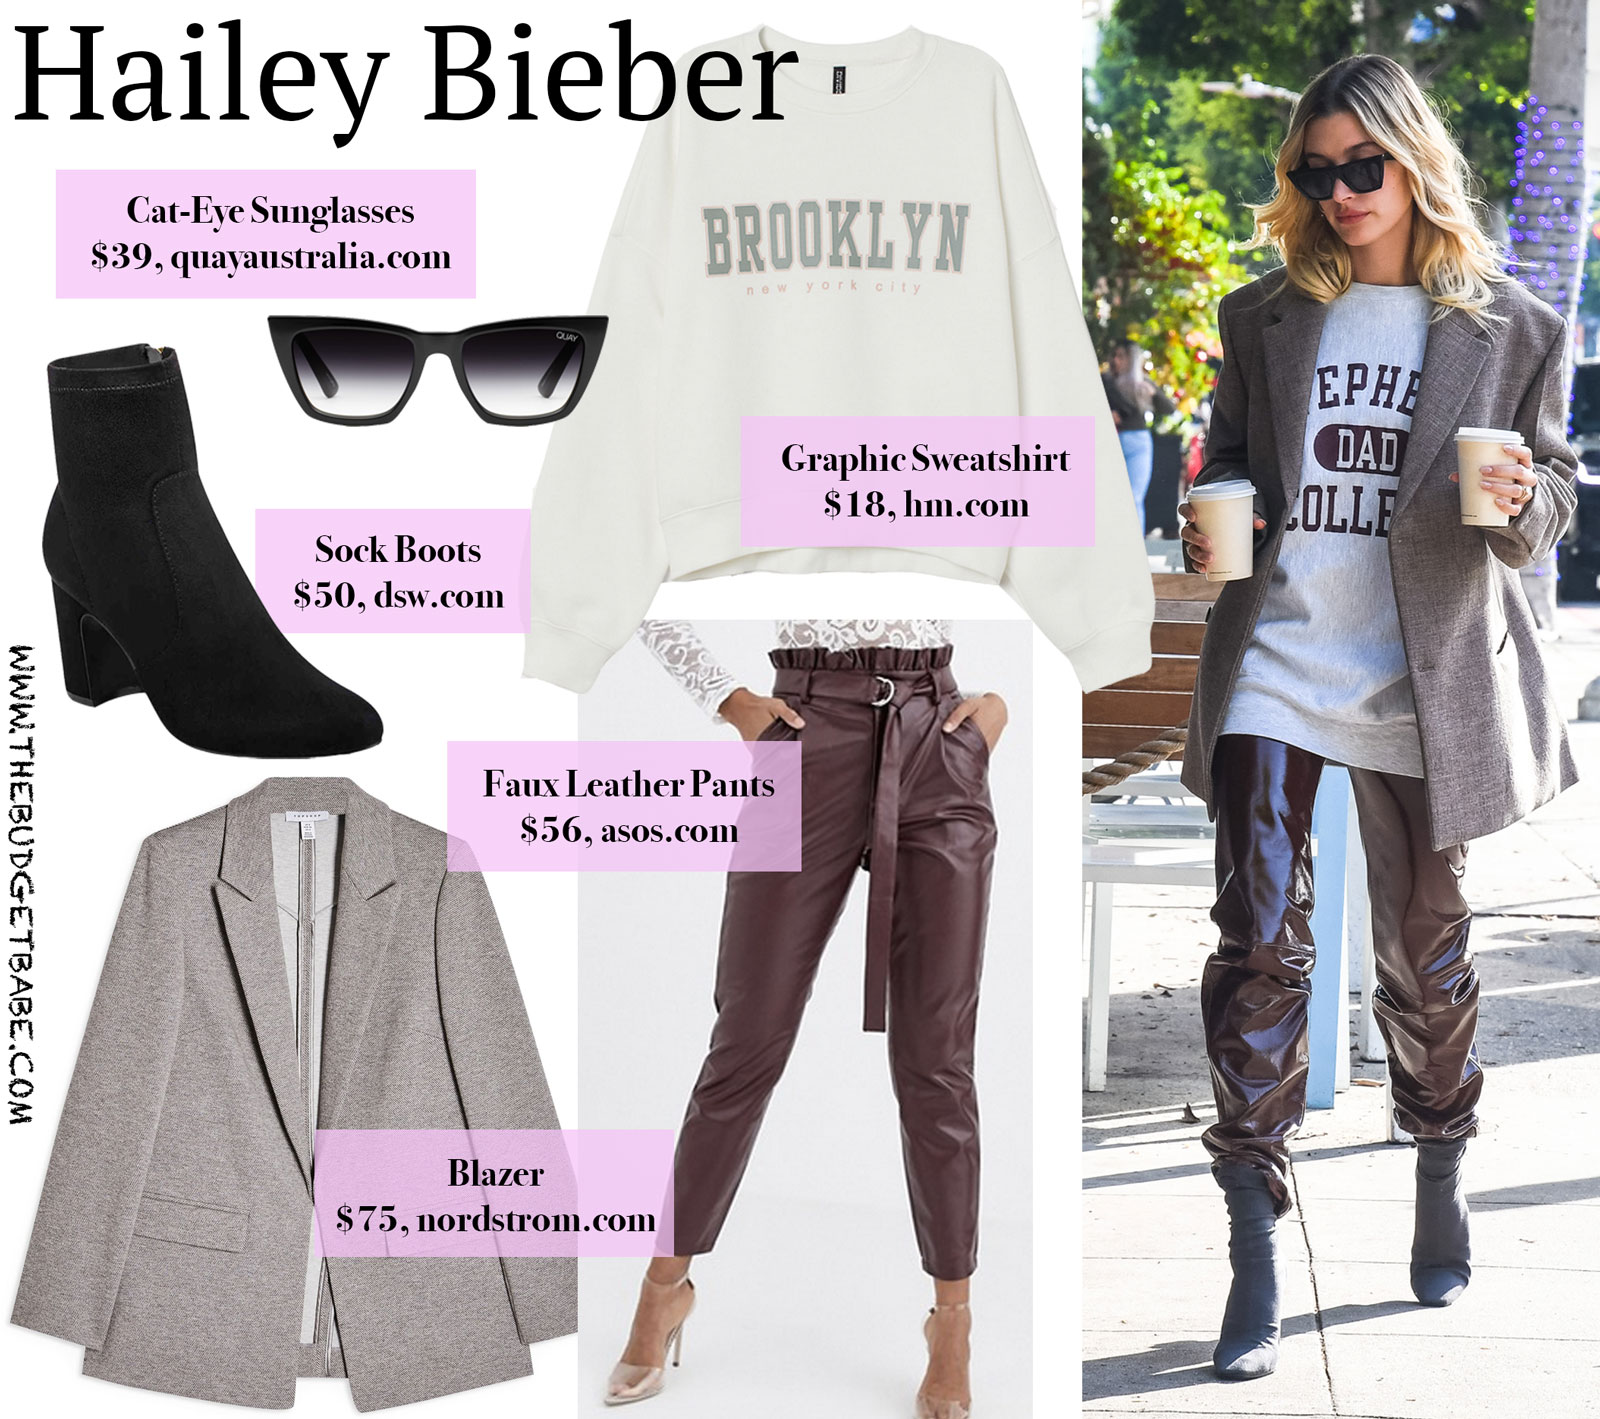 Hailey Bieber Graphic Sweatshirt Leather Pants Look for Less